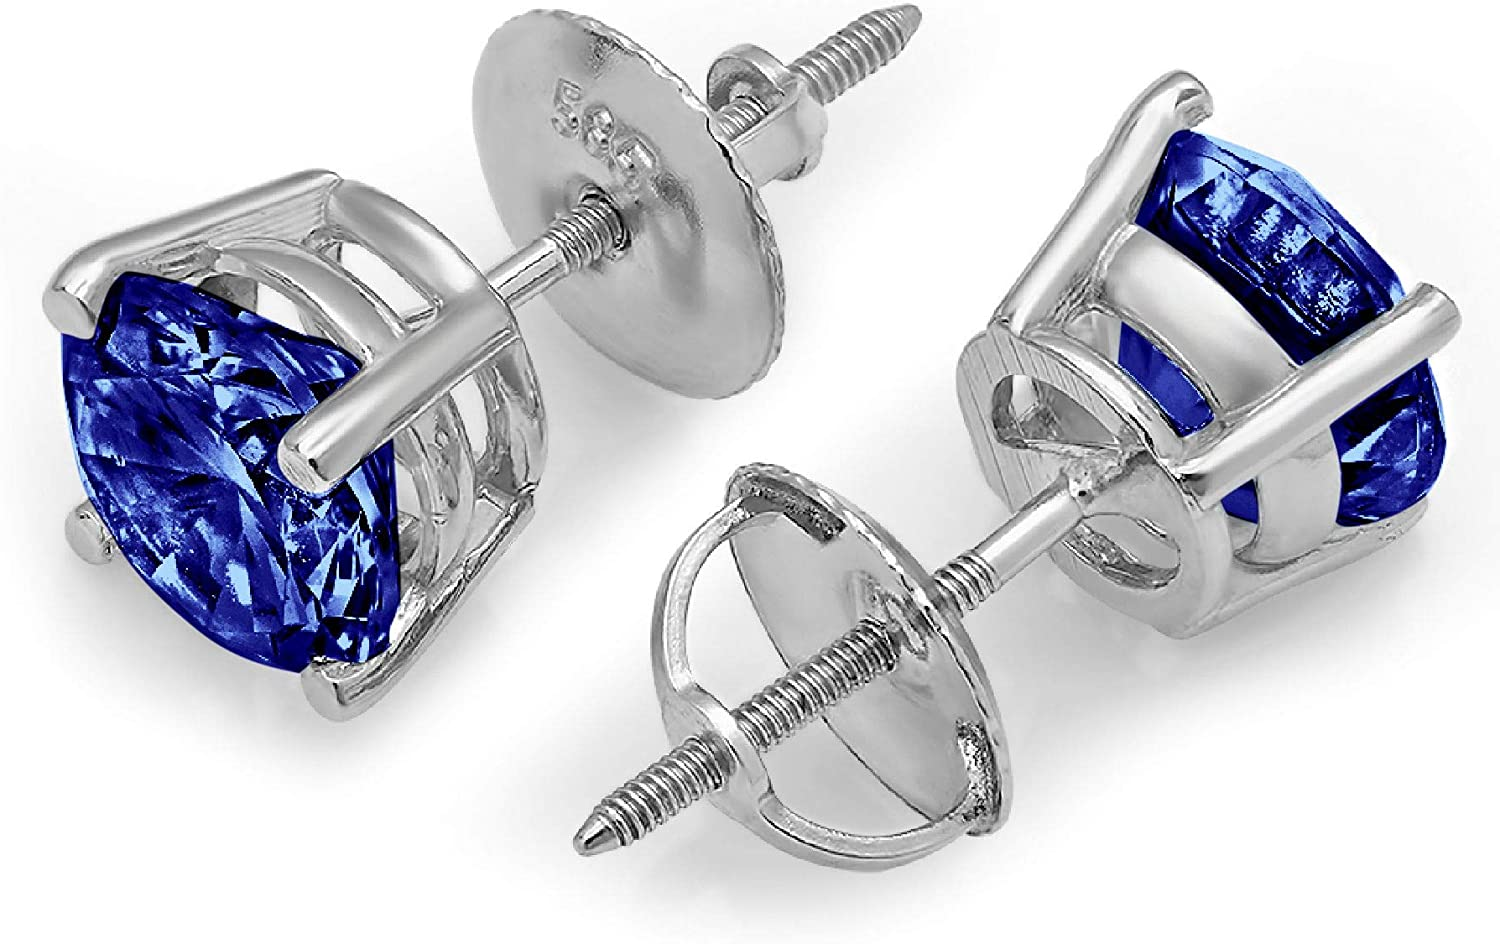 3.0 ct Brilliant Round Cut Solitaire Flawless Genuine Simulated CZ Blue Tanzanite Gemstone VVS1 Ideal Pair of Designer Stud Earrings Solid 14k White Gold Screw Back